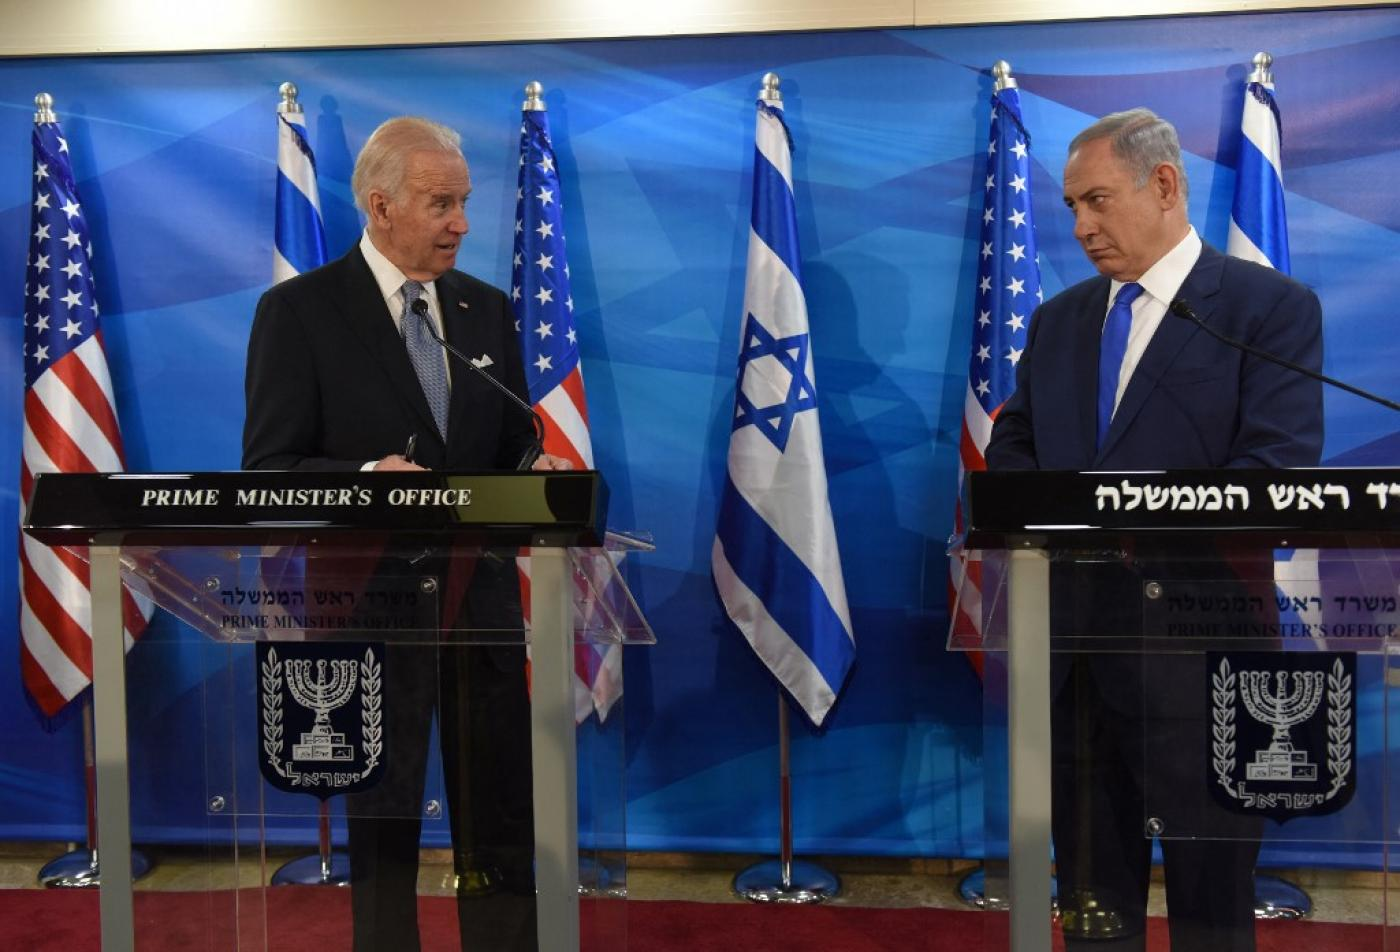 Biden's refusal to call Israeli PM Netanyahu sparks questions over leaders' relationship